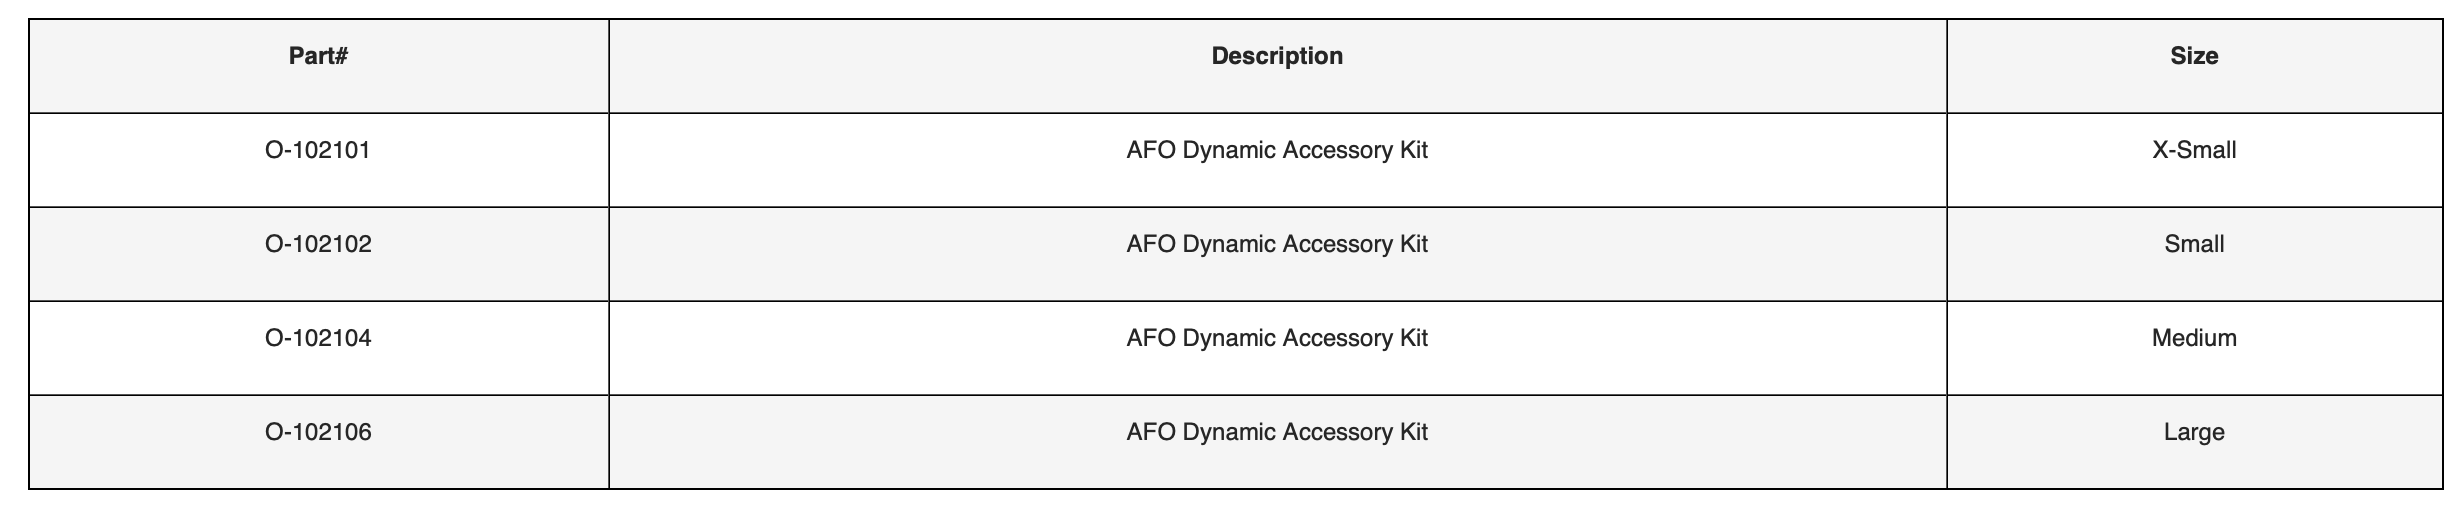 dynamic-accessory-kit-.png